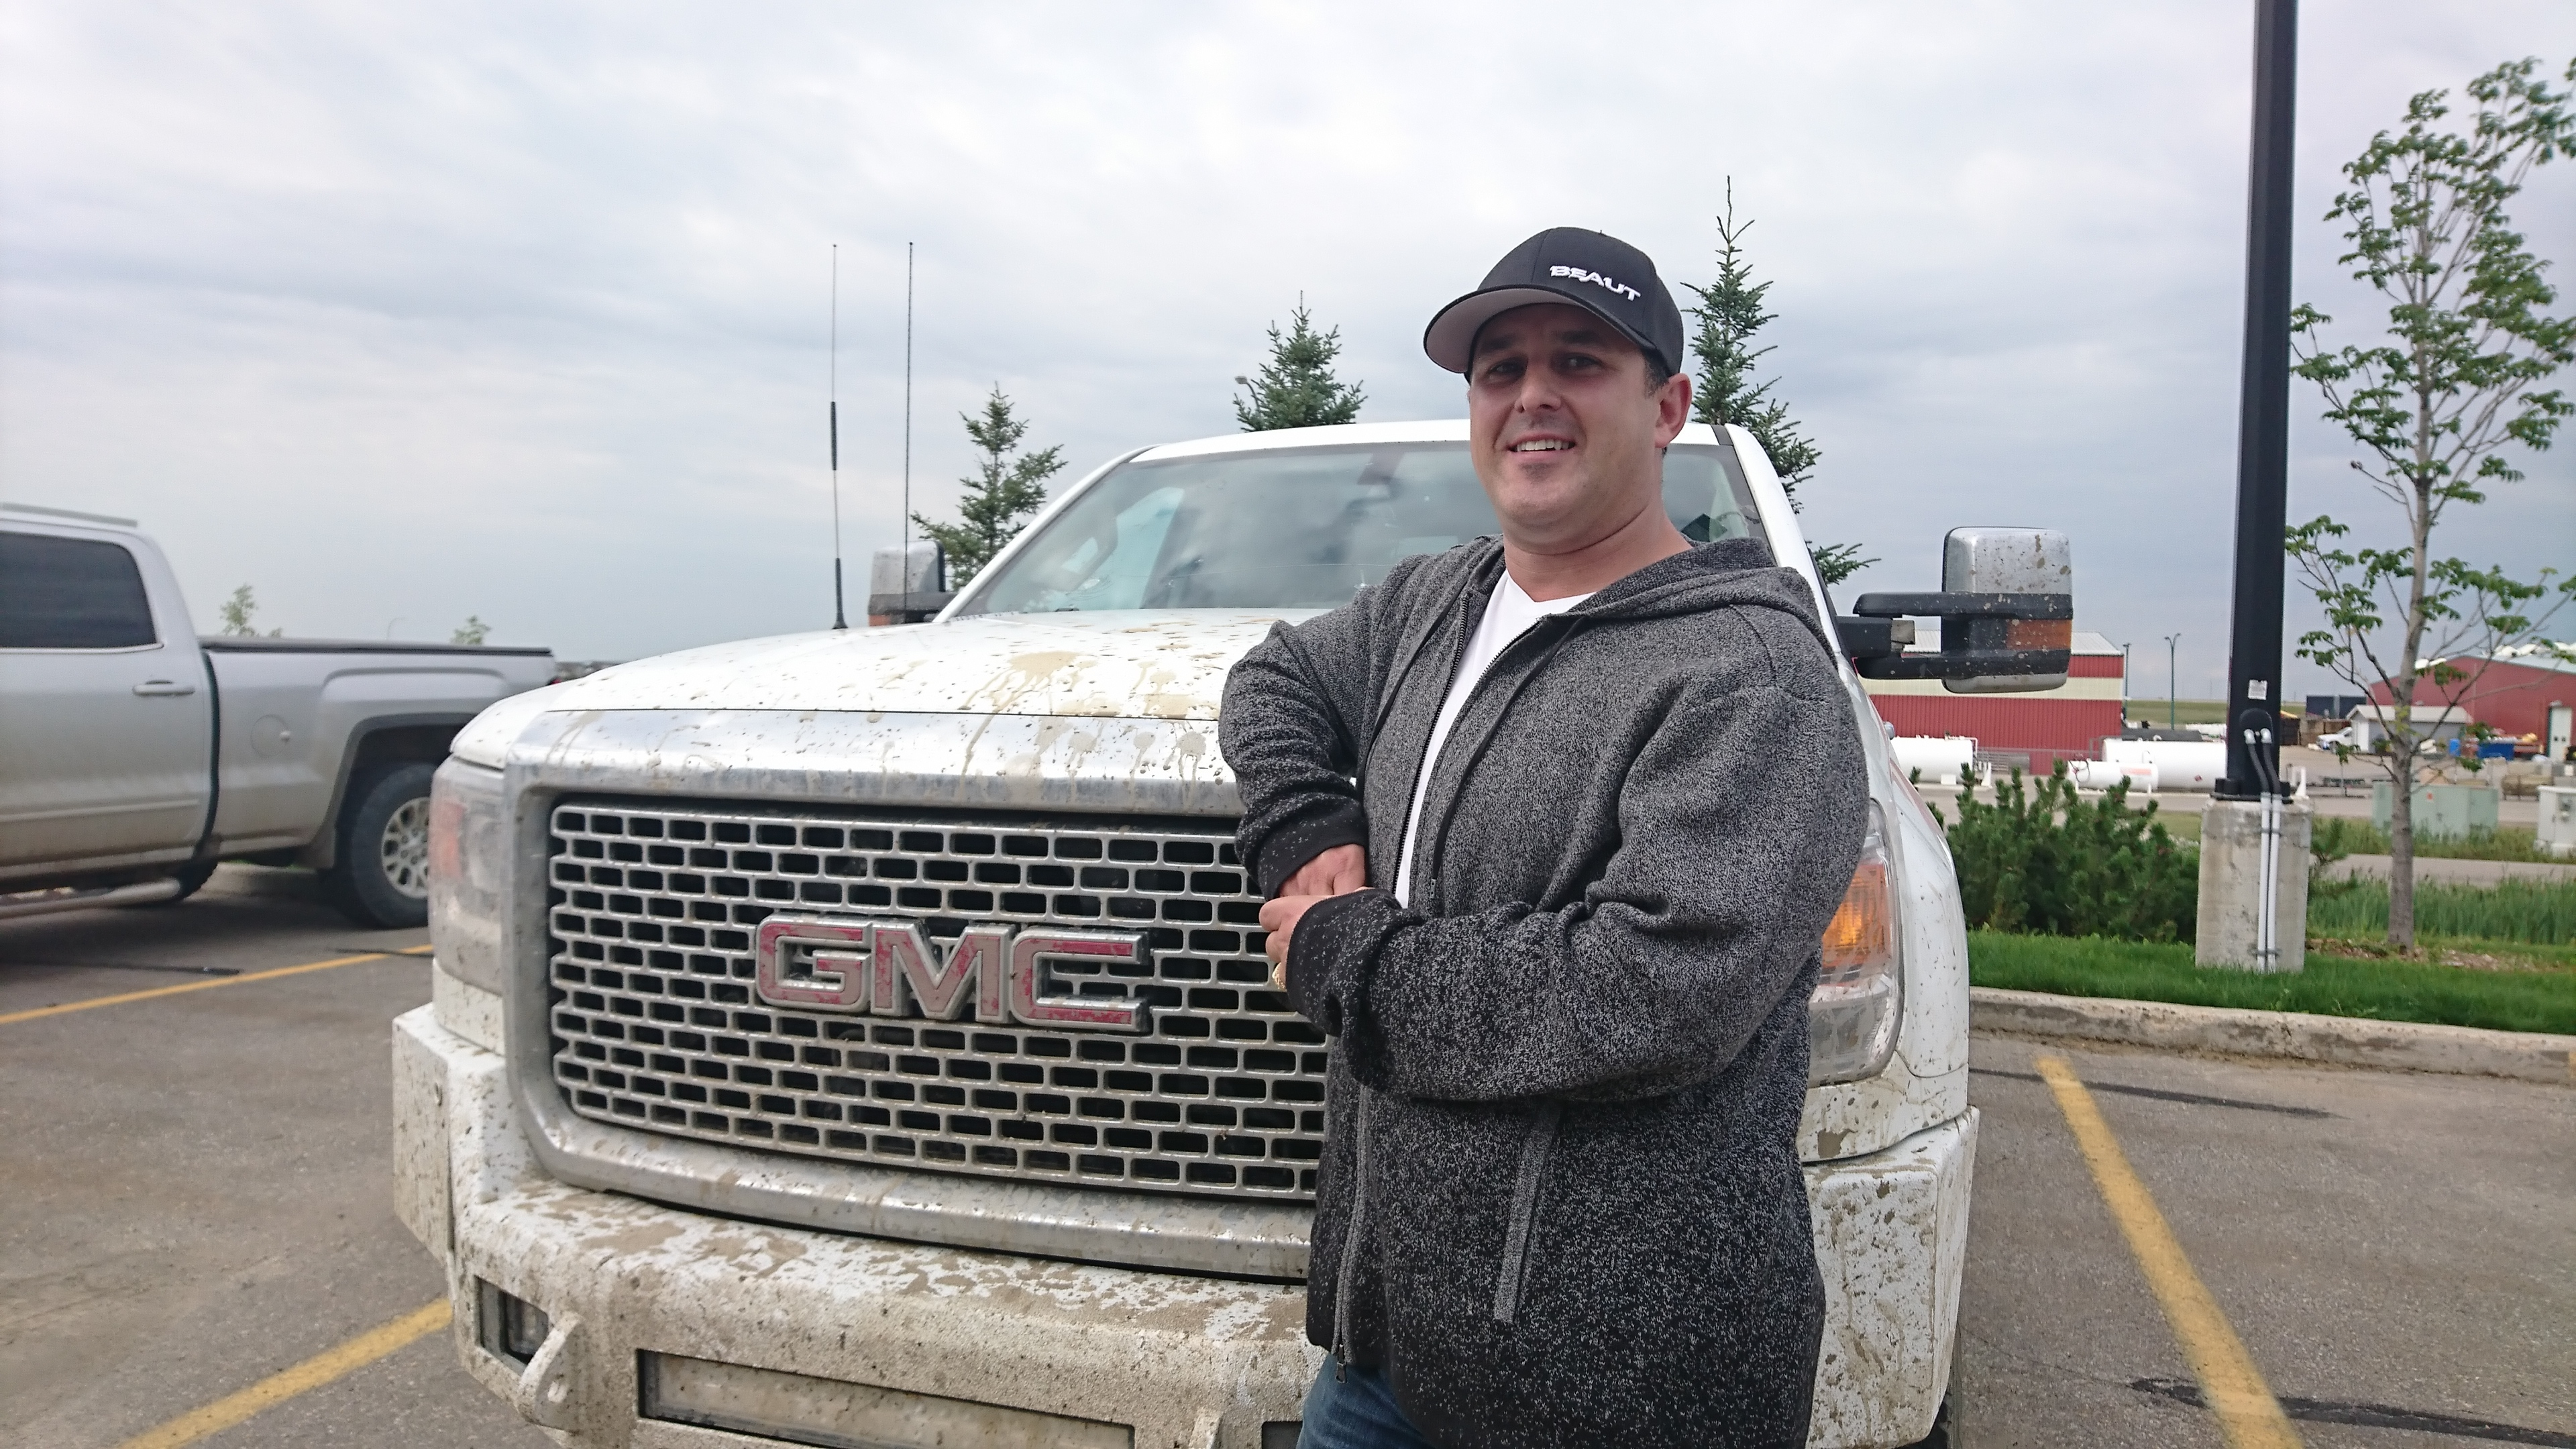 Grande Prairie, Alta., resident Aaron Gallagher works for Beaut Oilfield Services, an oil and gas trucking company. (Tony Seskus/CBC)